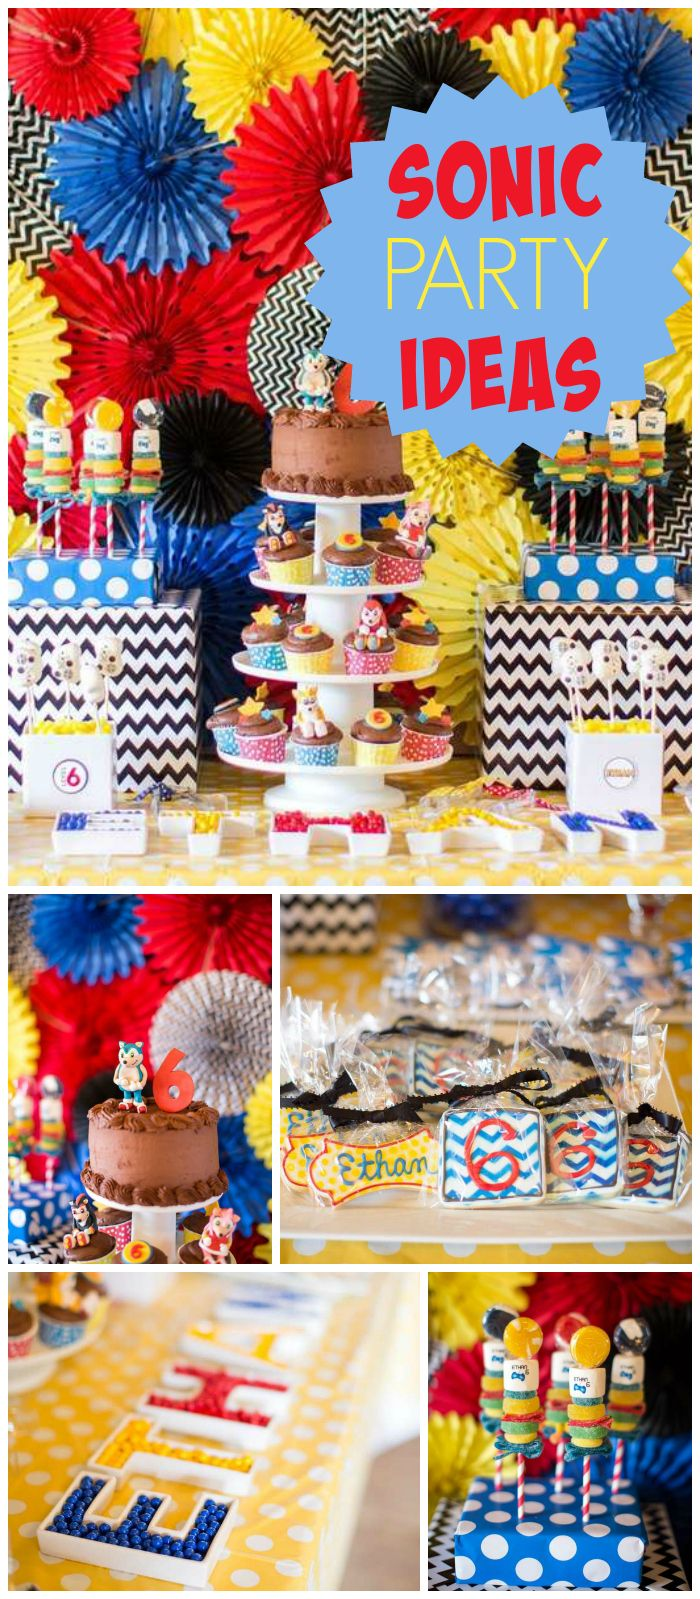 Check out this awesome Sonic video game party! See more party ideas at CatchMyParty.com!